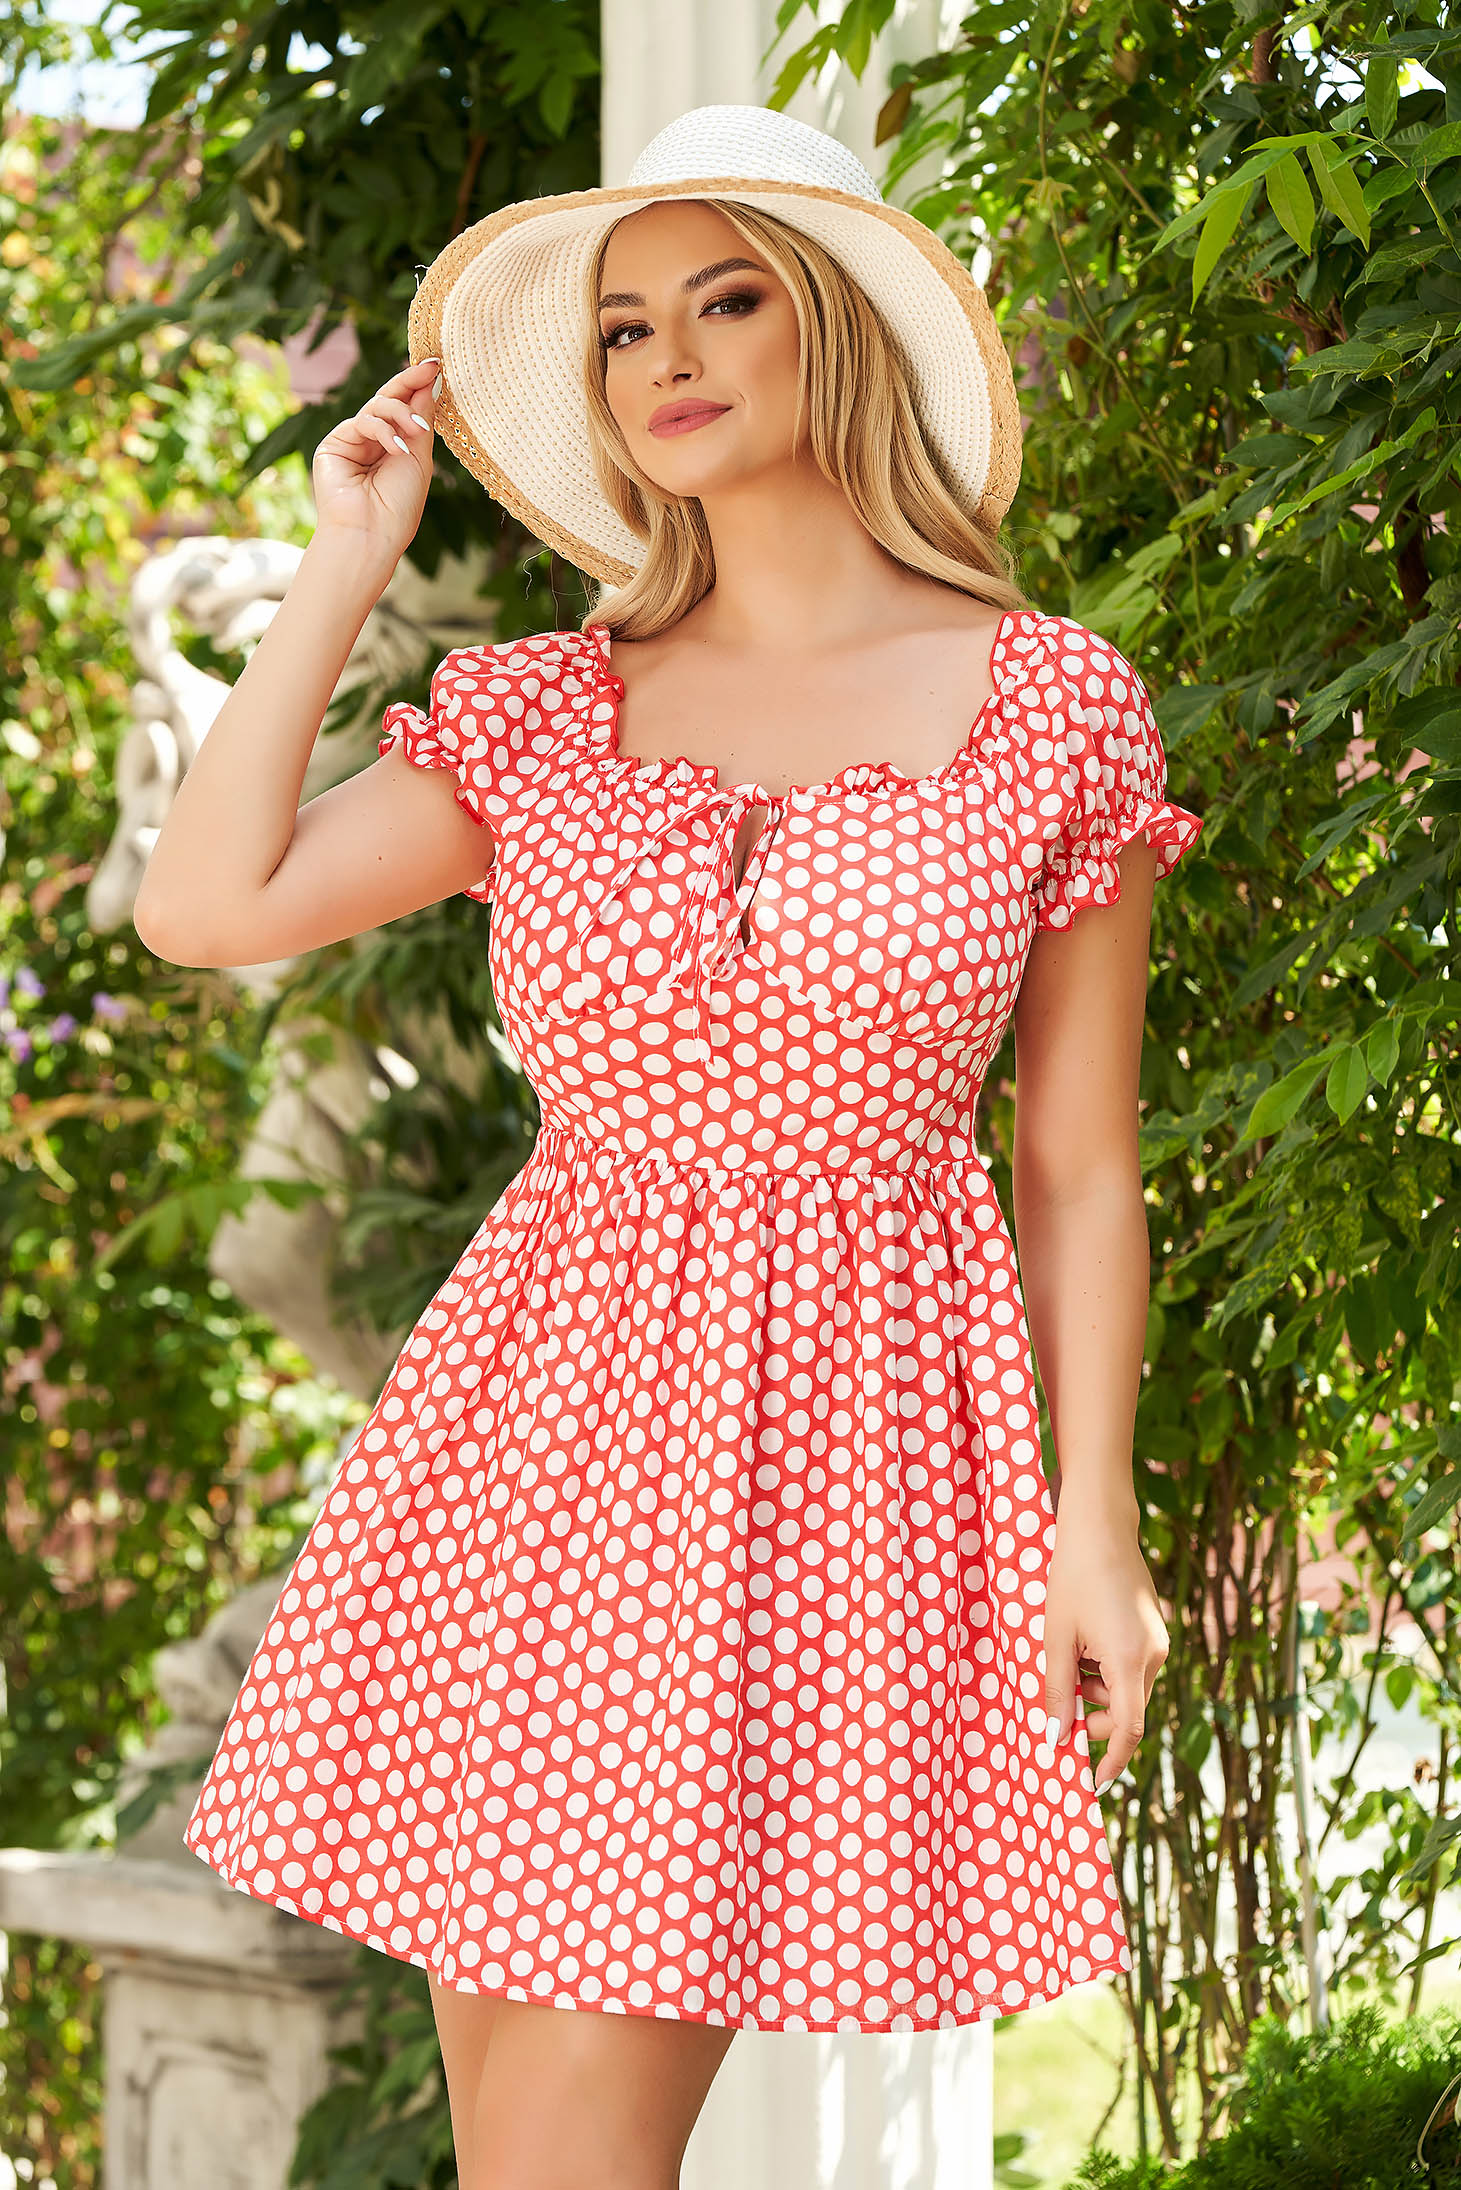 Red dress short cut daily cloche thin fabric dots print naked shoulders